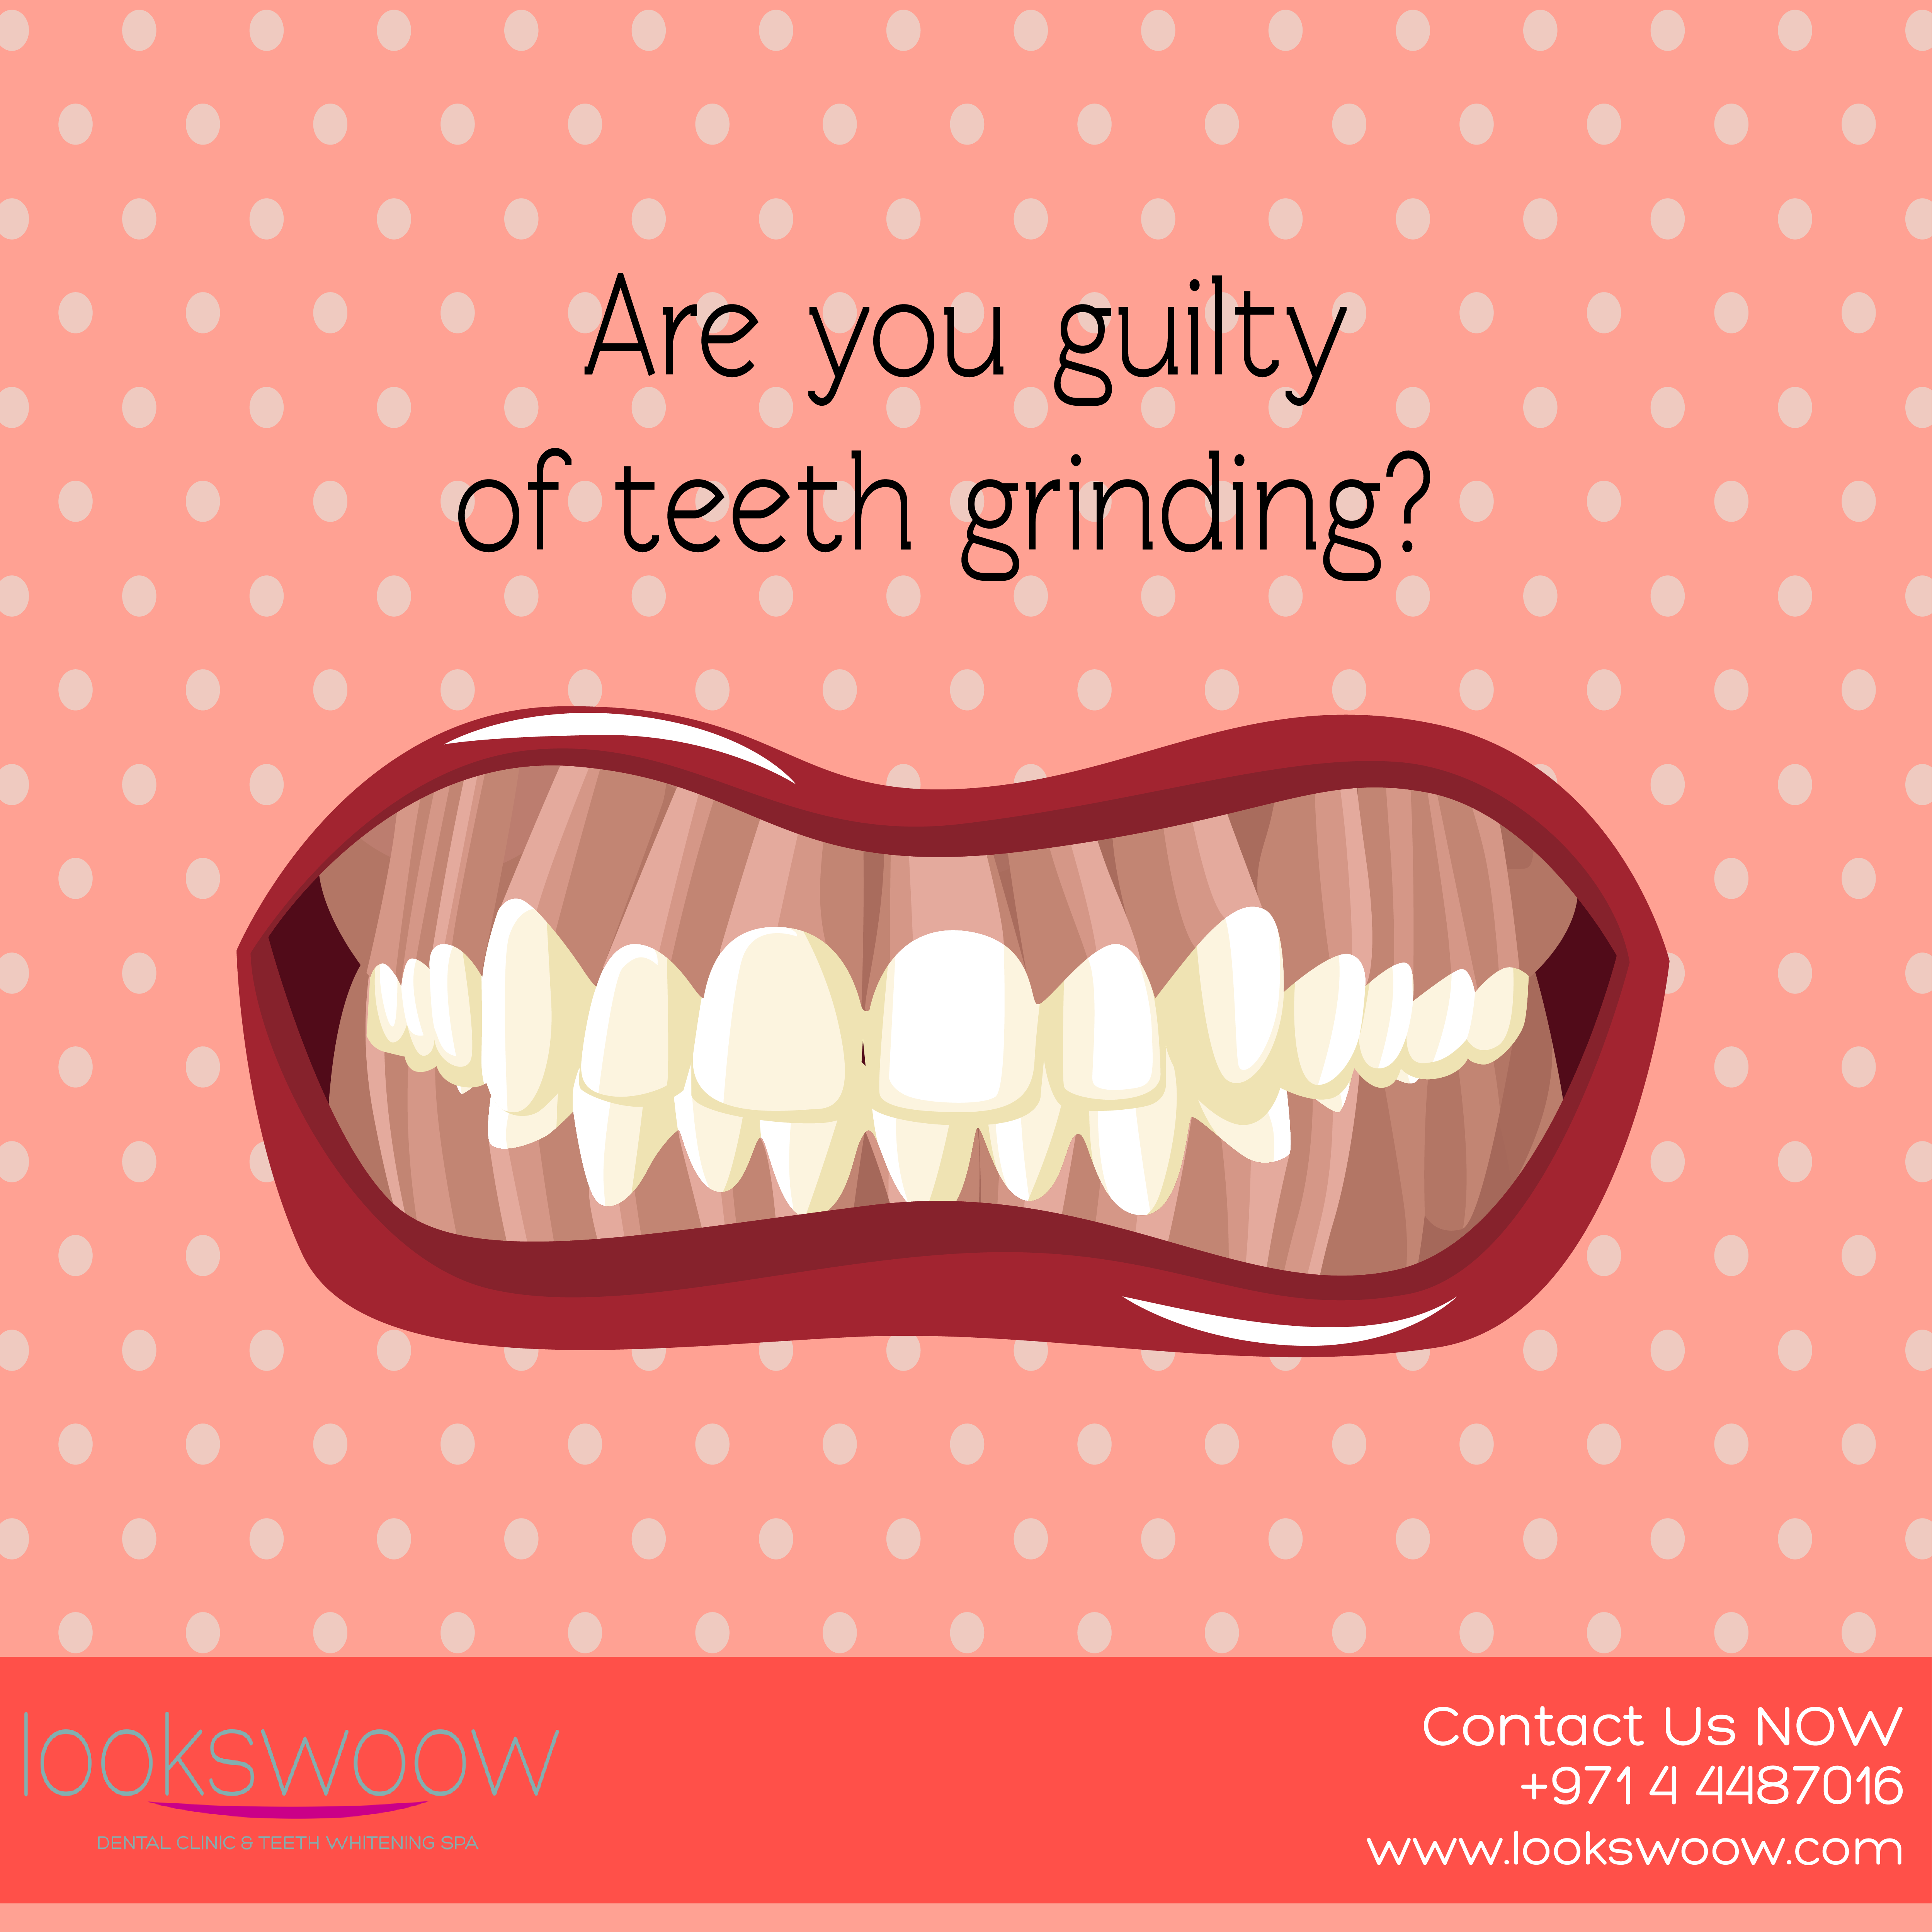 Are You Guilty Of Teeth Grinding Try Engaging In More Exercise